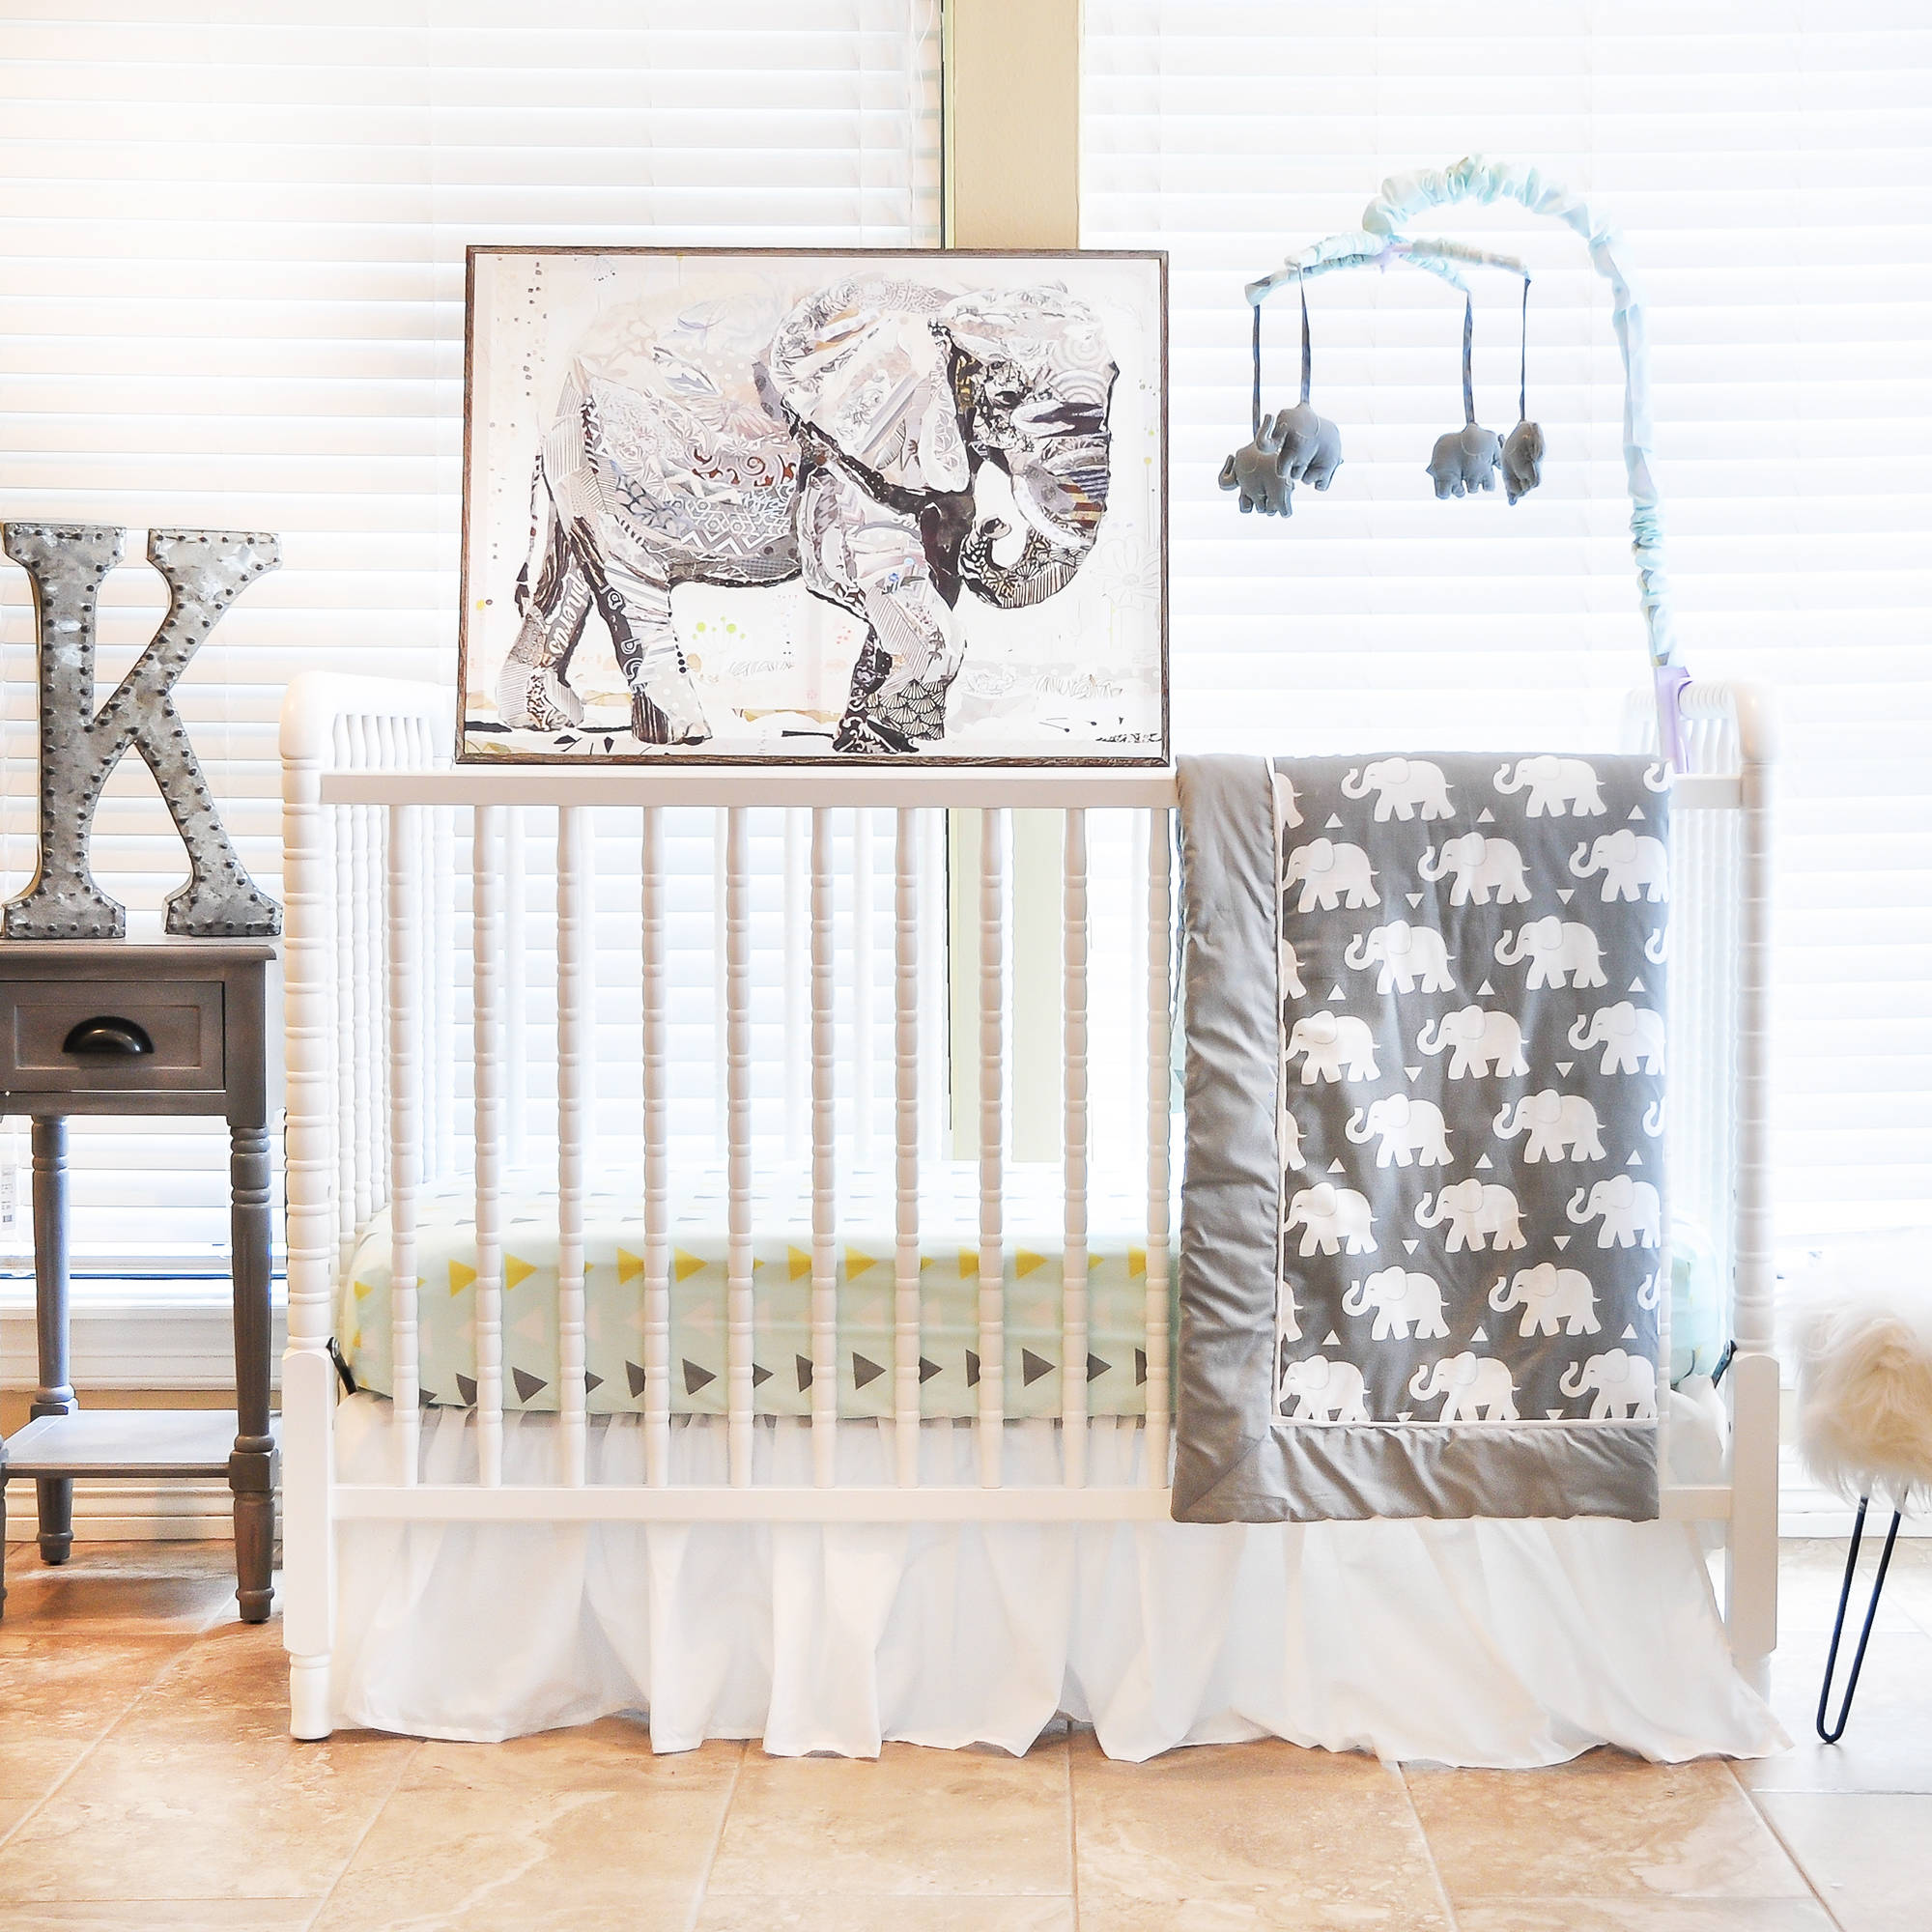 Pam Grace Creations Indie Elephant 6 Piece Crib Bedding Set by Pam Grace Creations